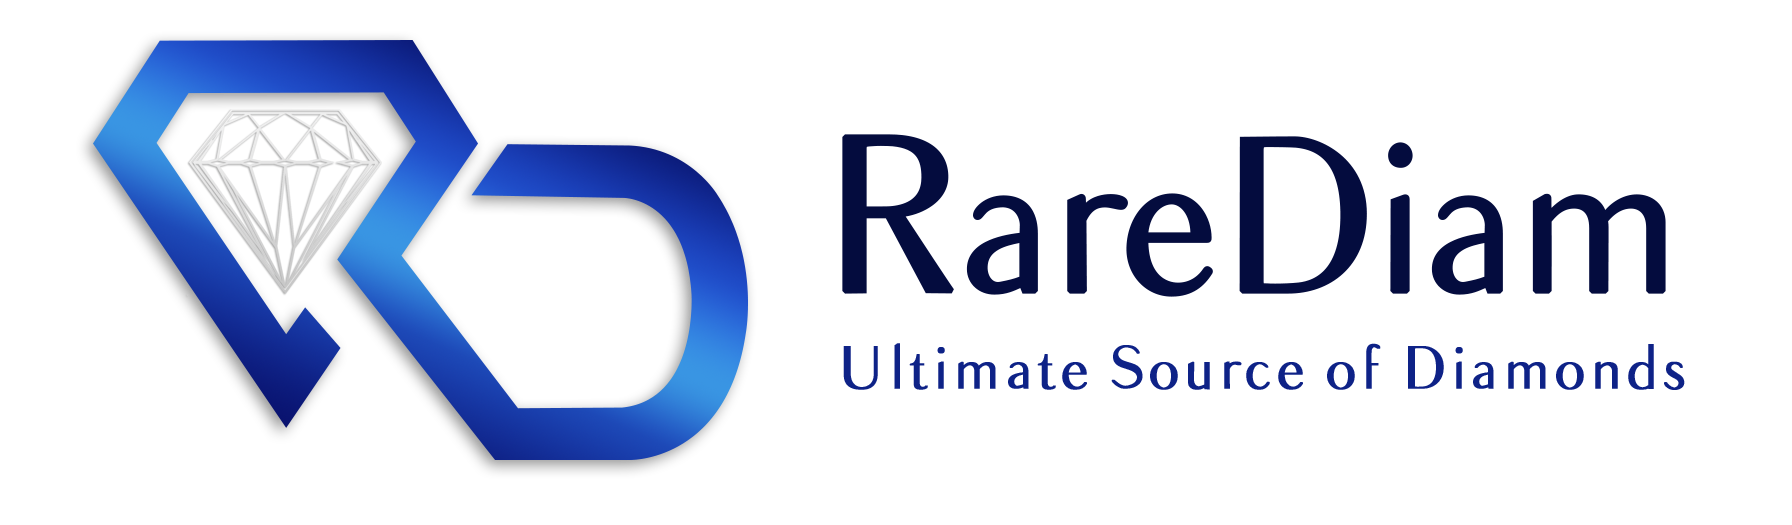 Logo-for-RareDiamond1-.png